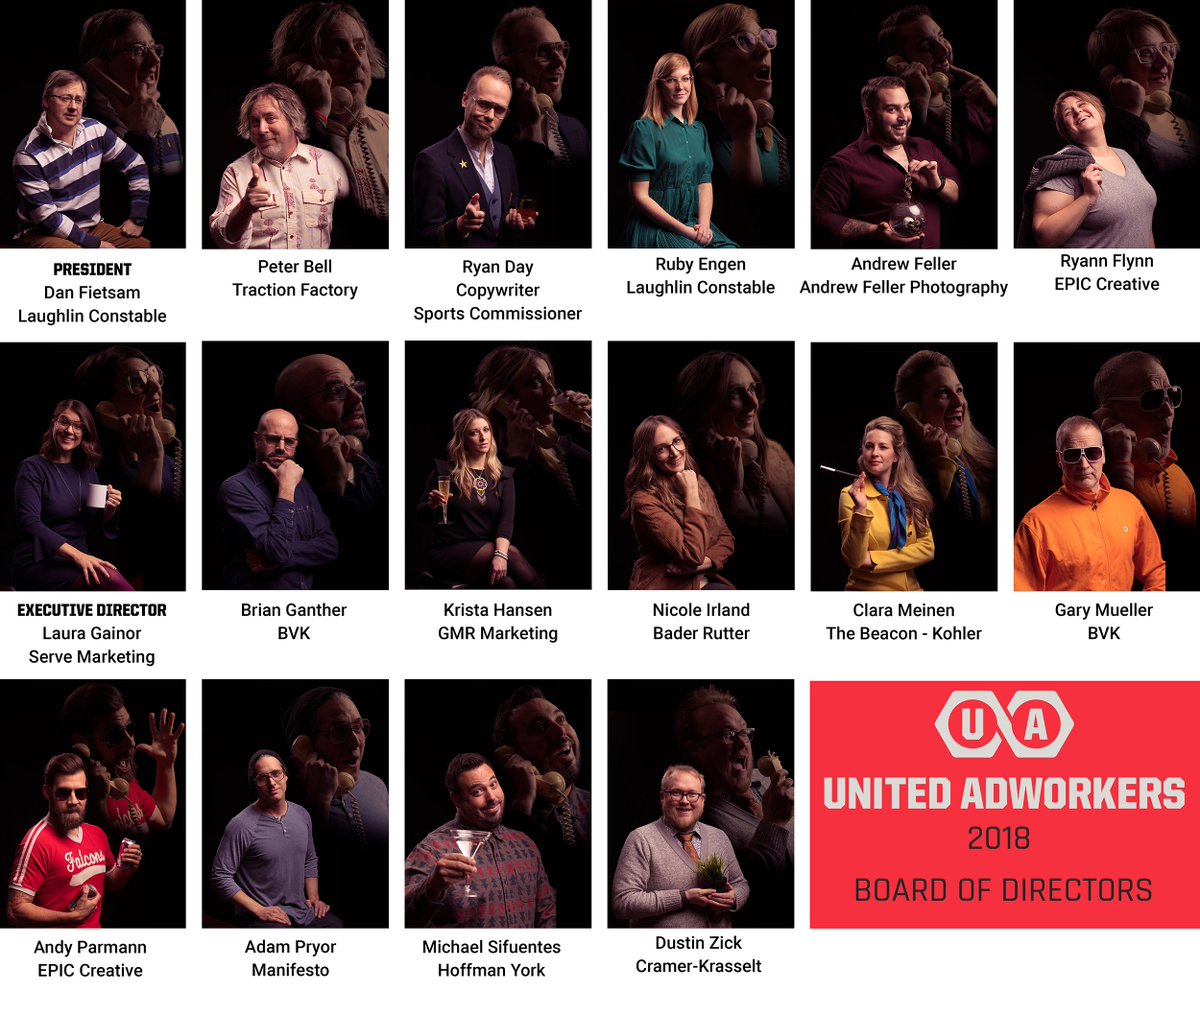 Announcing your 2018 #Adworkers President & Board! Join us this Thursday @BestPlacePabst for the member party. https://t.co/ZtPAXnYirf Pics by @andrewfeller https://t.co/7yr1BGqXGI